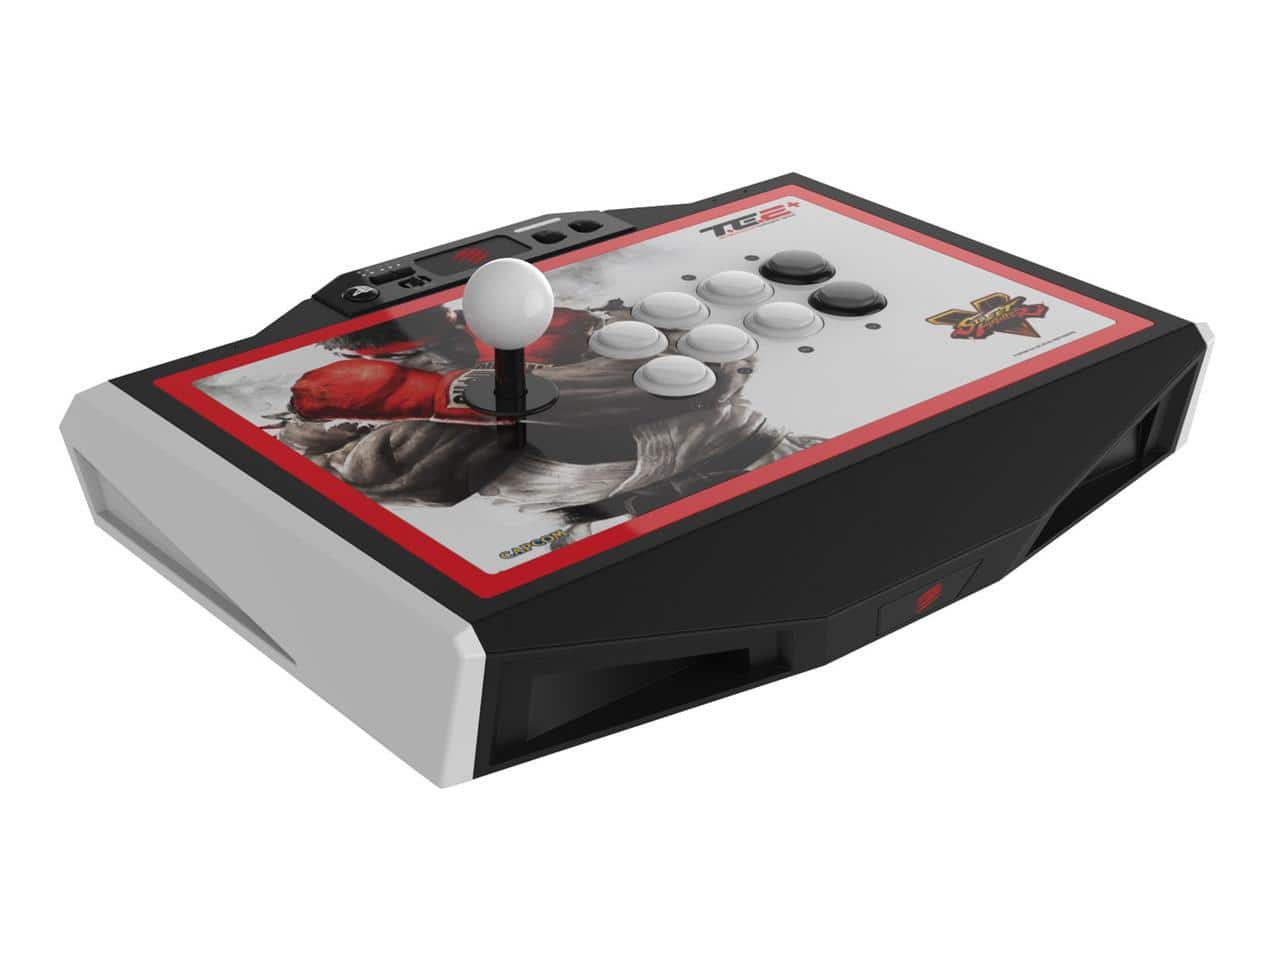 Mad Catz SFV Arcade FightStick Tournament Edition 2+ for PlayStation 3 & PlayStation 4 for $199.99